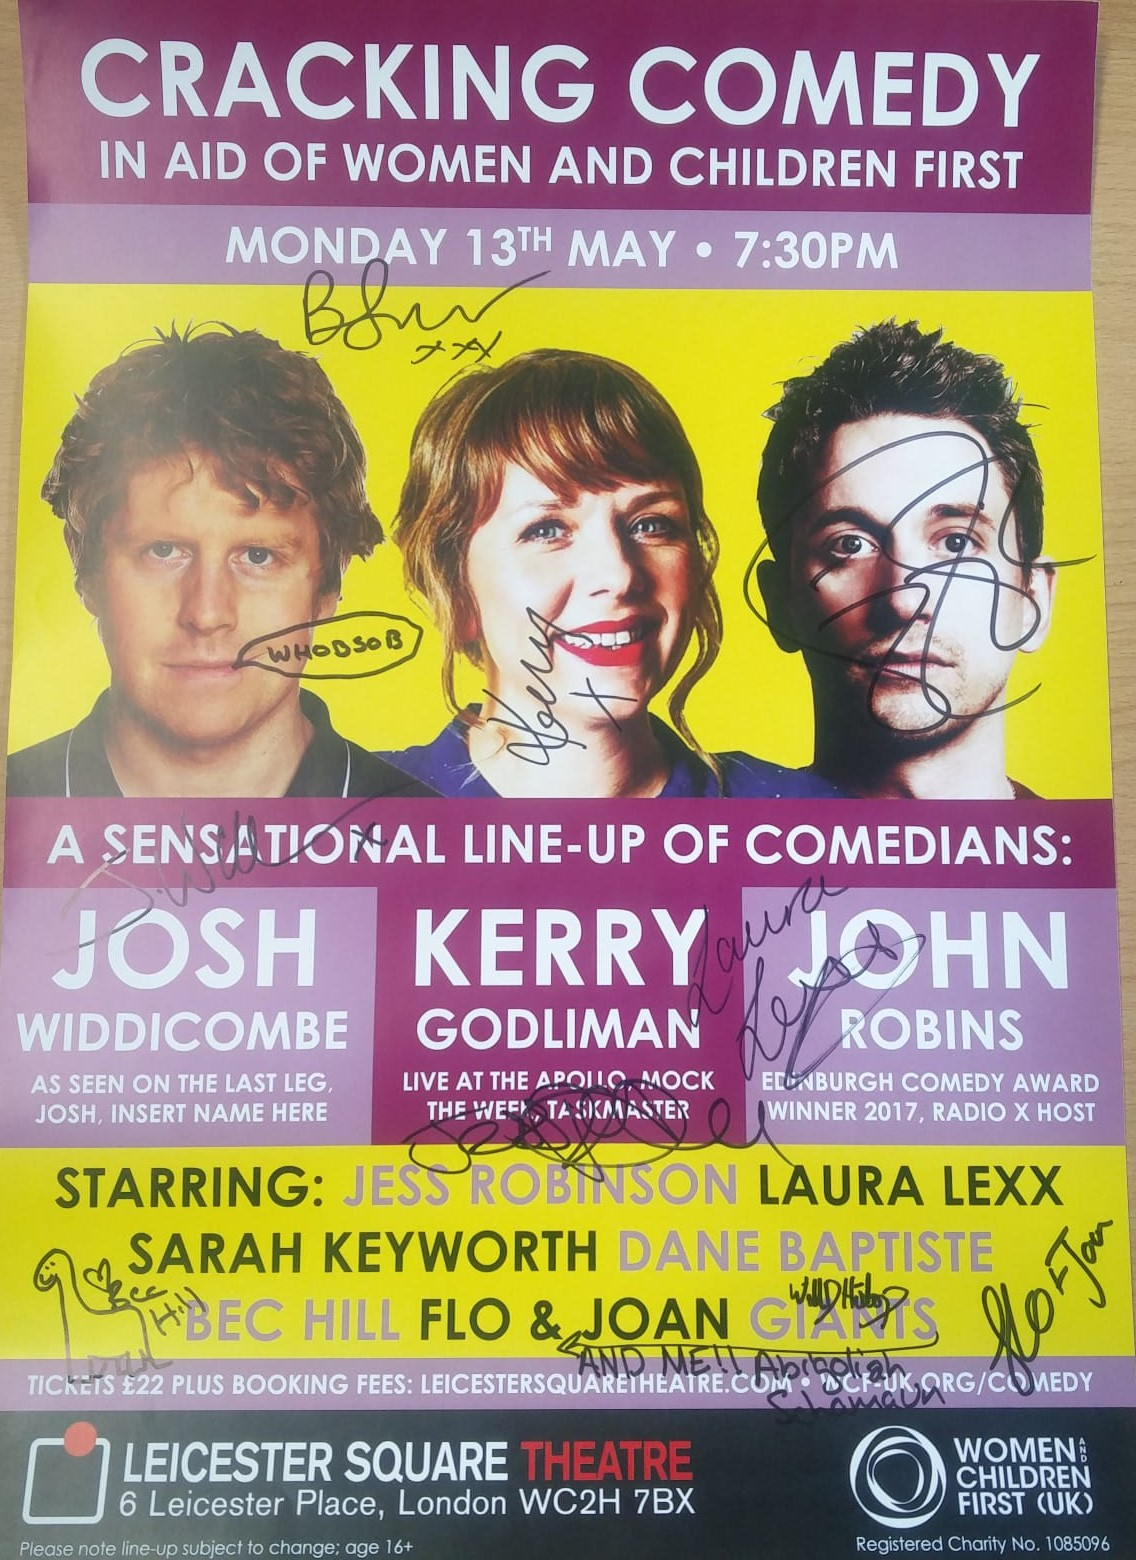 Signed Cracking Comedy in aid of Women and Children First A3 poster: bidding closes Friday 7th June